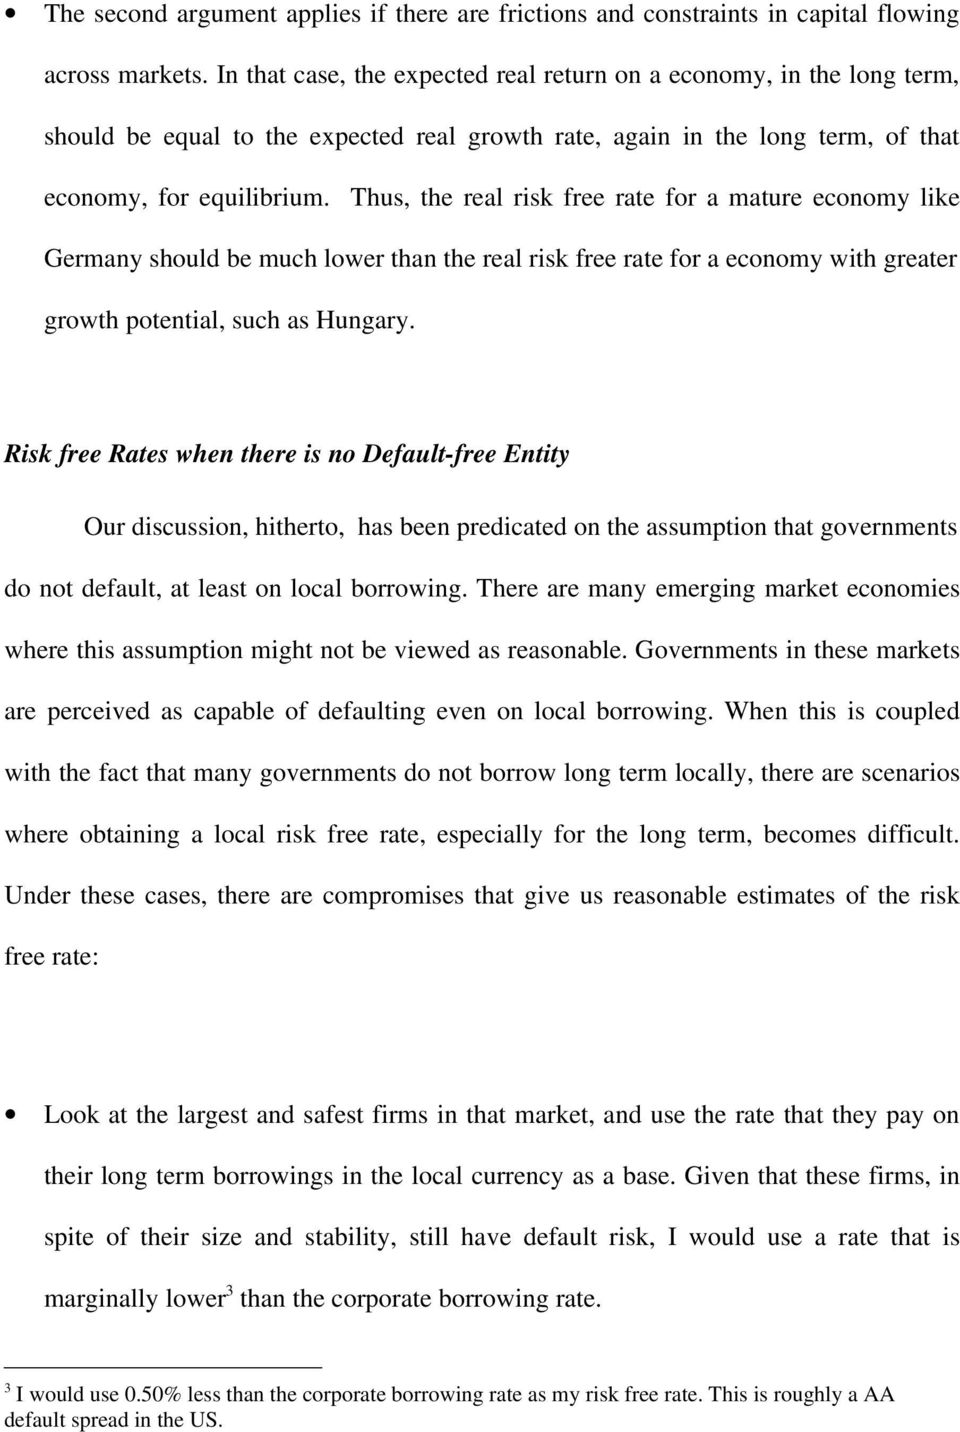 Thus, the real risk free rate for a mature economy like Germany should be much lower than the real risk free rate for a economy with greater growth potential, such as Hungary.